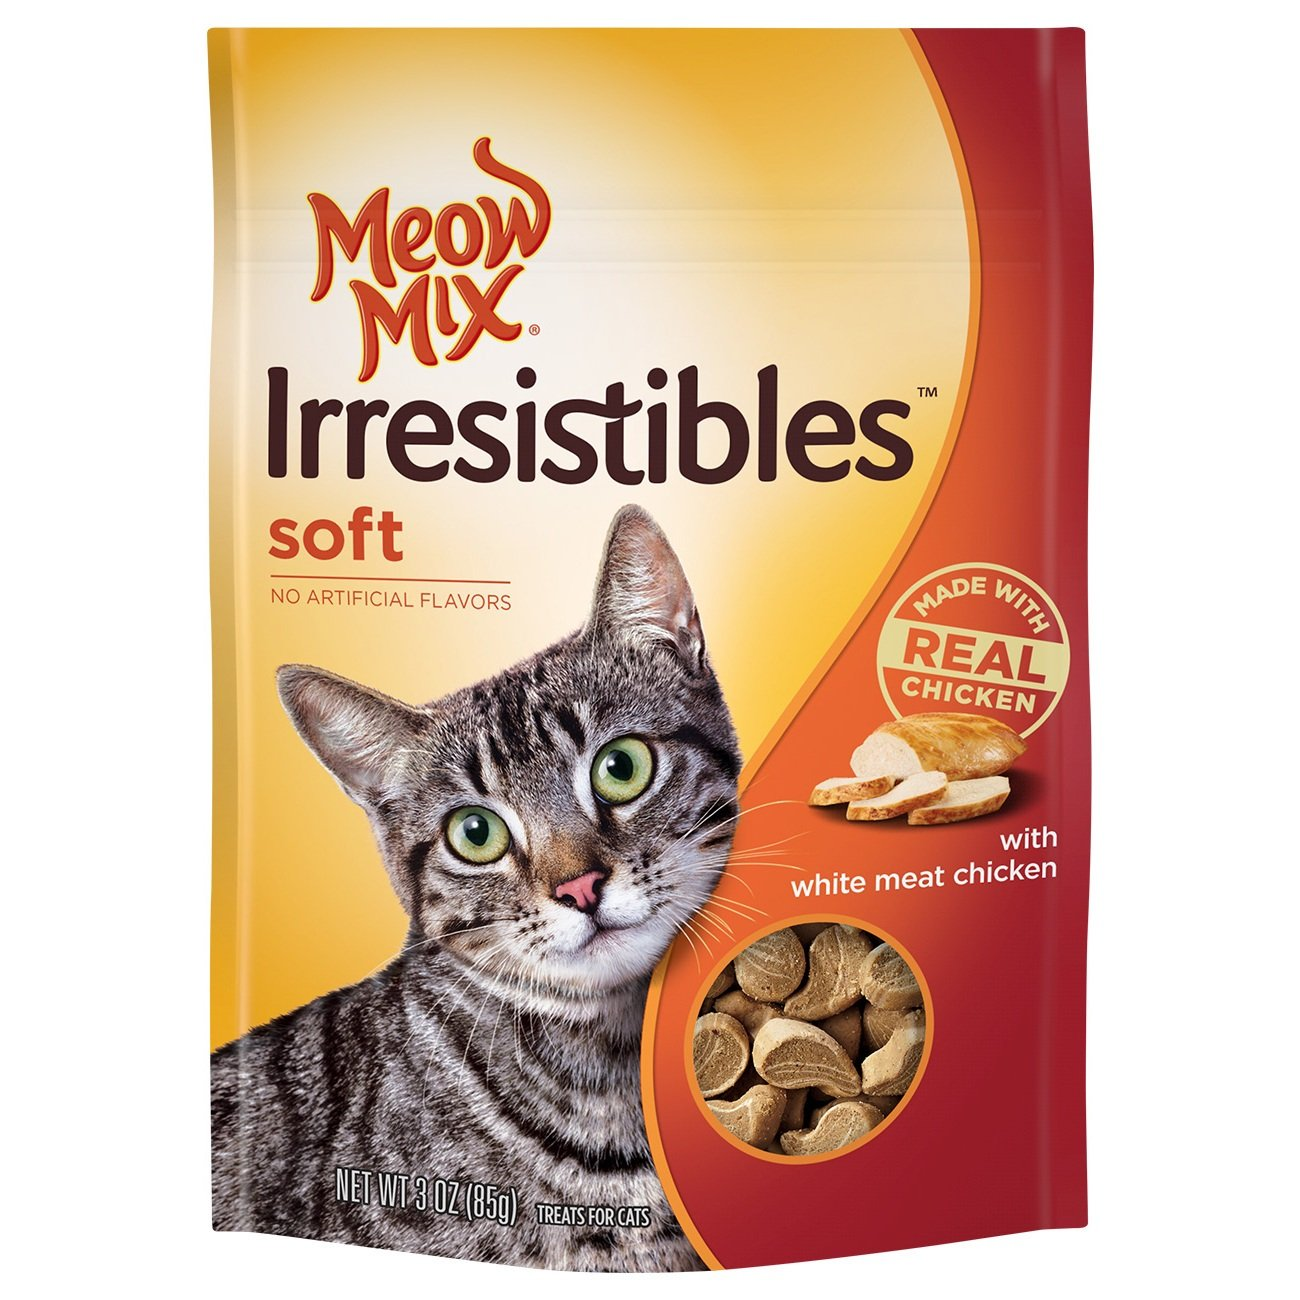 Meow Mix Irresistibles Soft Cat Treats With Real White Meat Chicken (Pack Of 10), 3 Oz. by Meow Mix